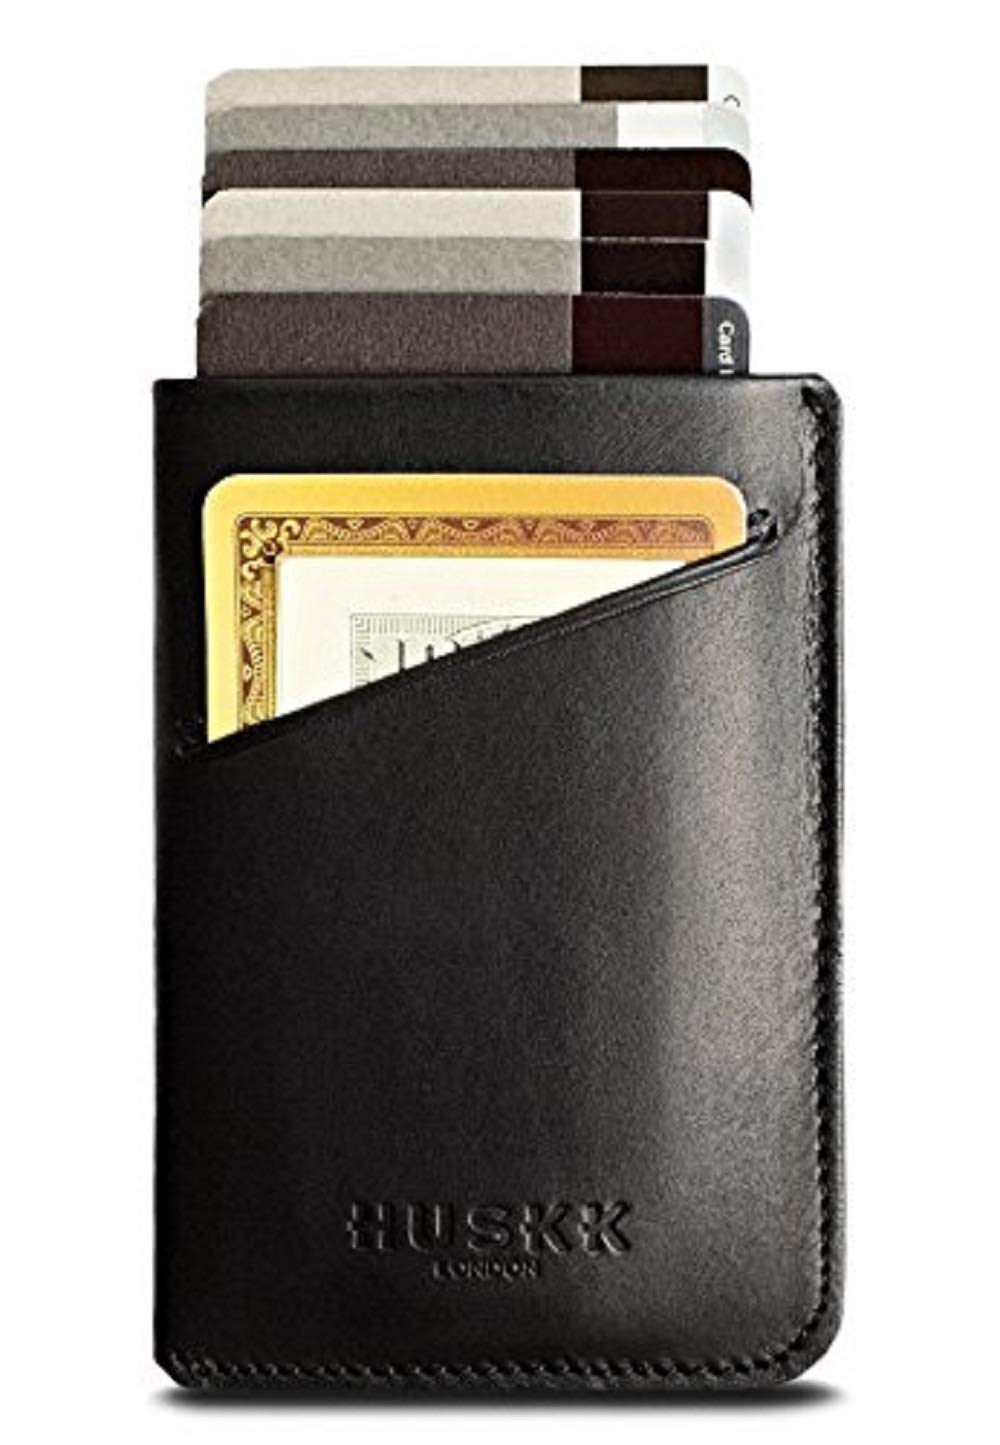 Slim Front Pocket Leather Wallet for Men Card Holder Up to 8 Cards /& Cash HUSKK CSC5-DBCH Brown